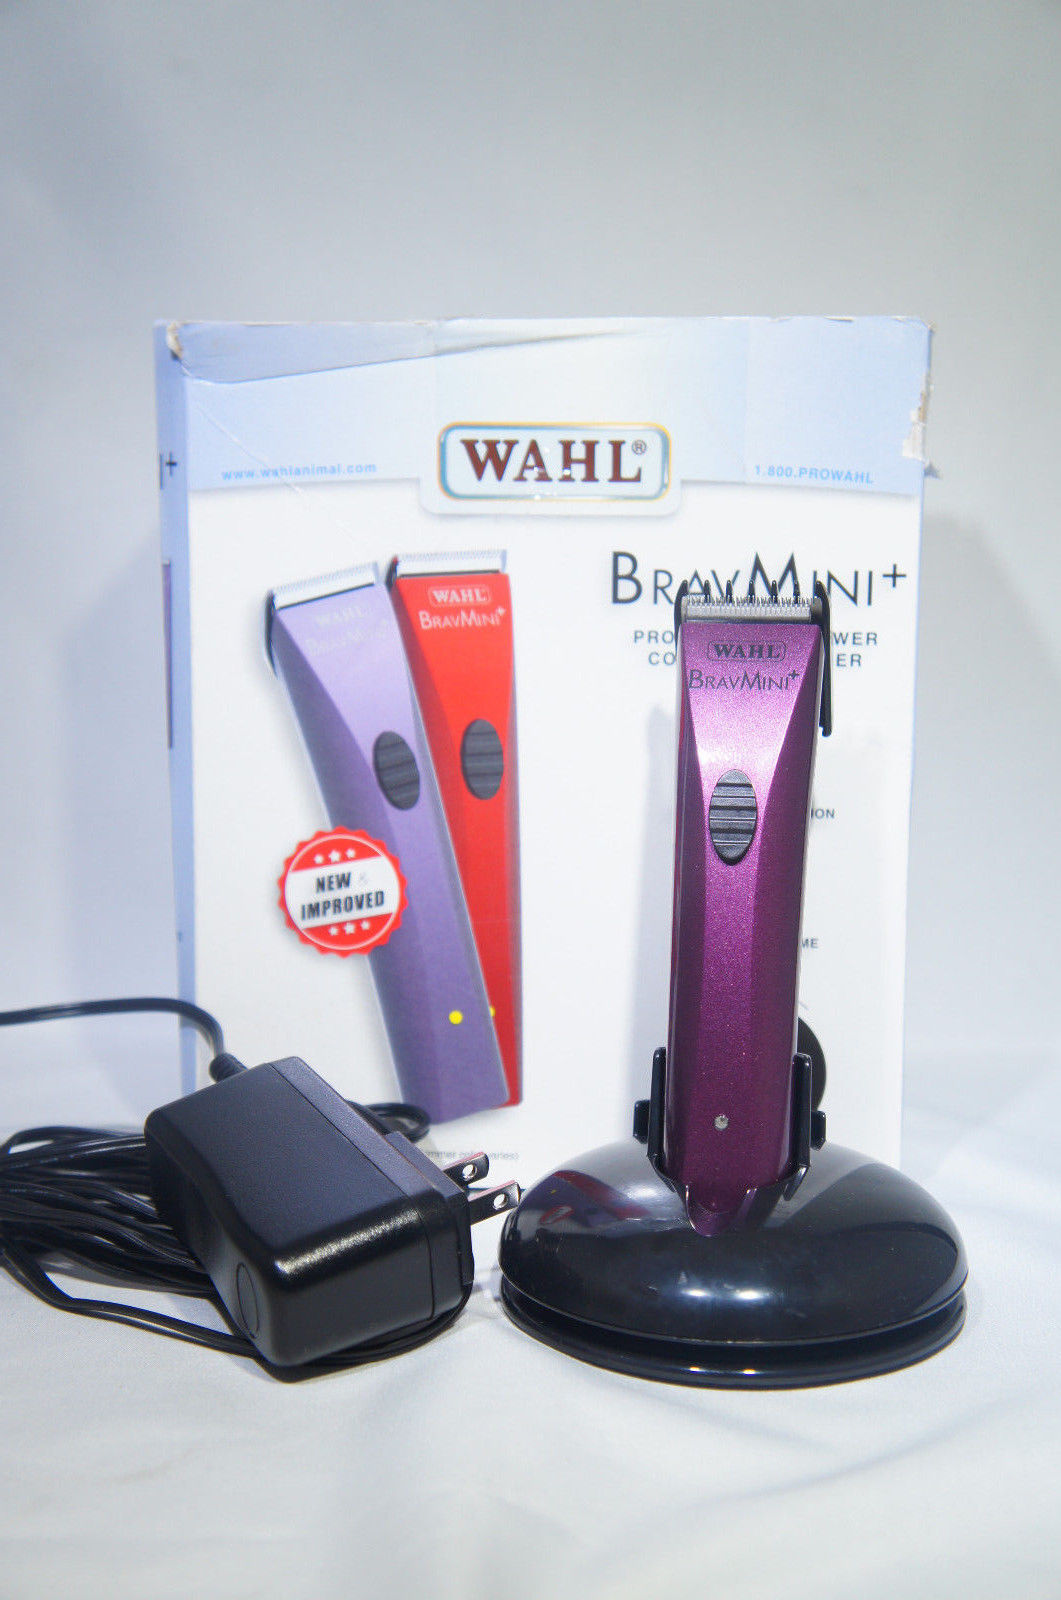 Wahl 41590-0438 Professional Animal BravMini+ Cordless Pet Trimmer (Like New)